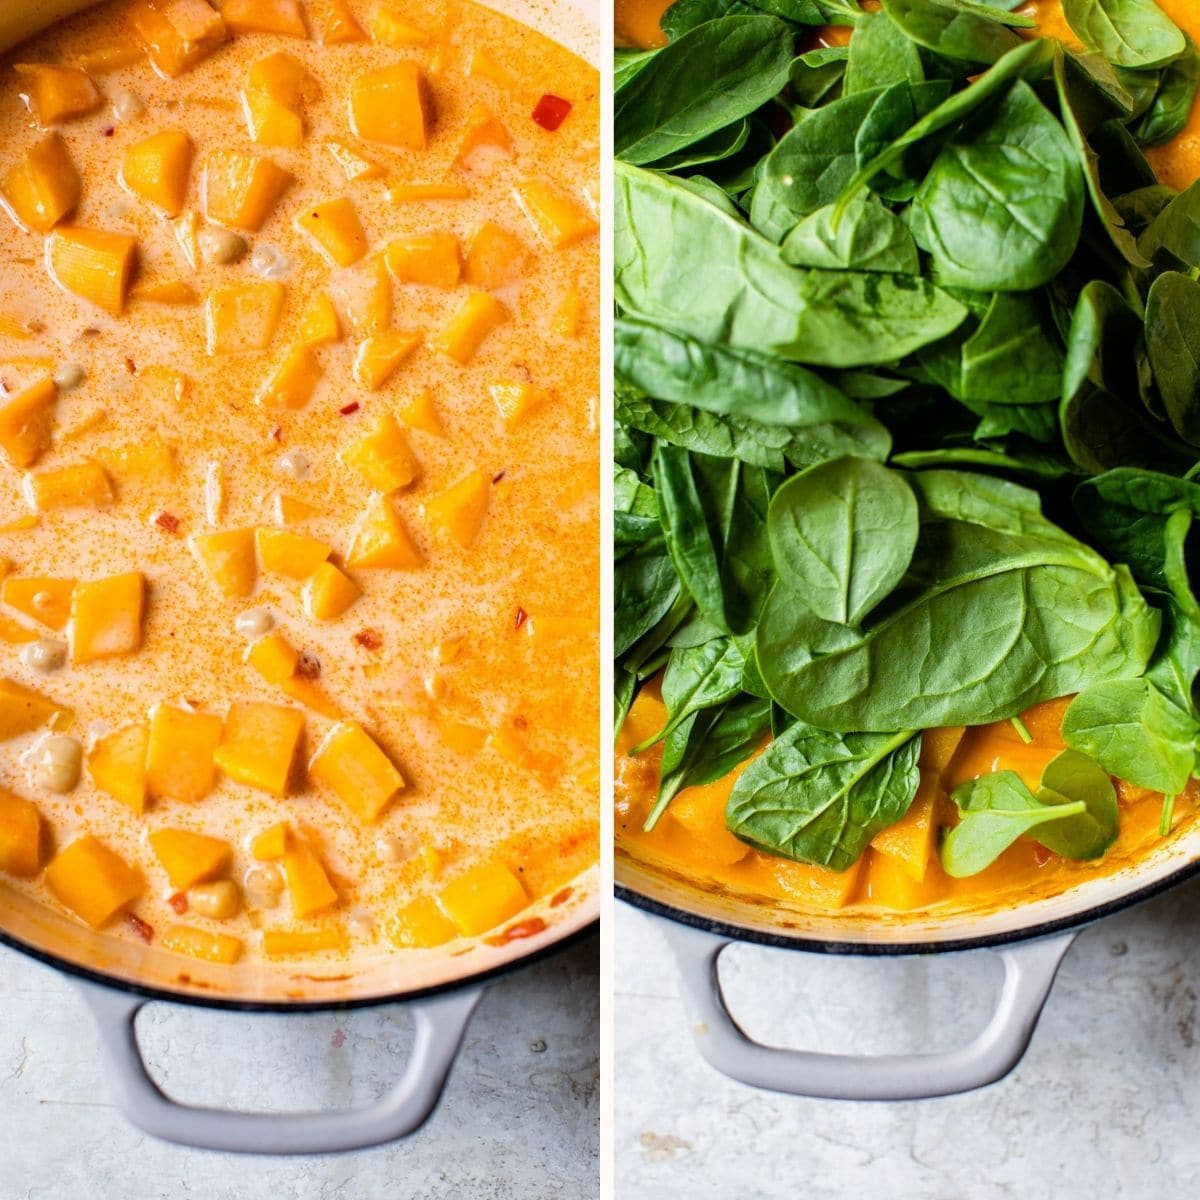 squash and spinach in a skillet